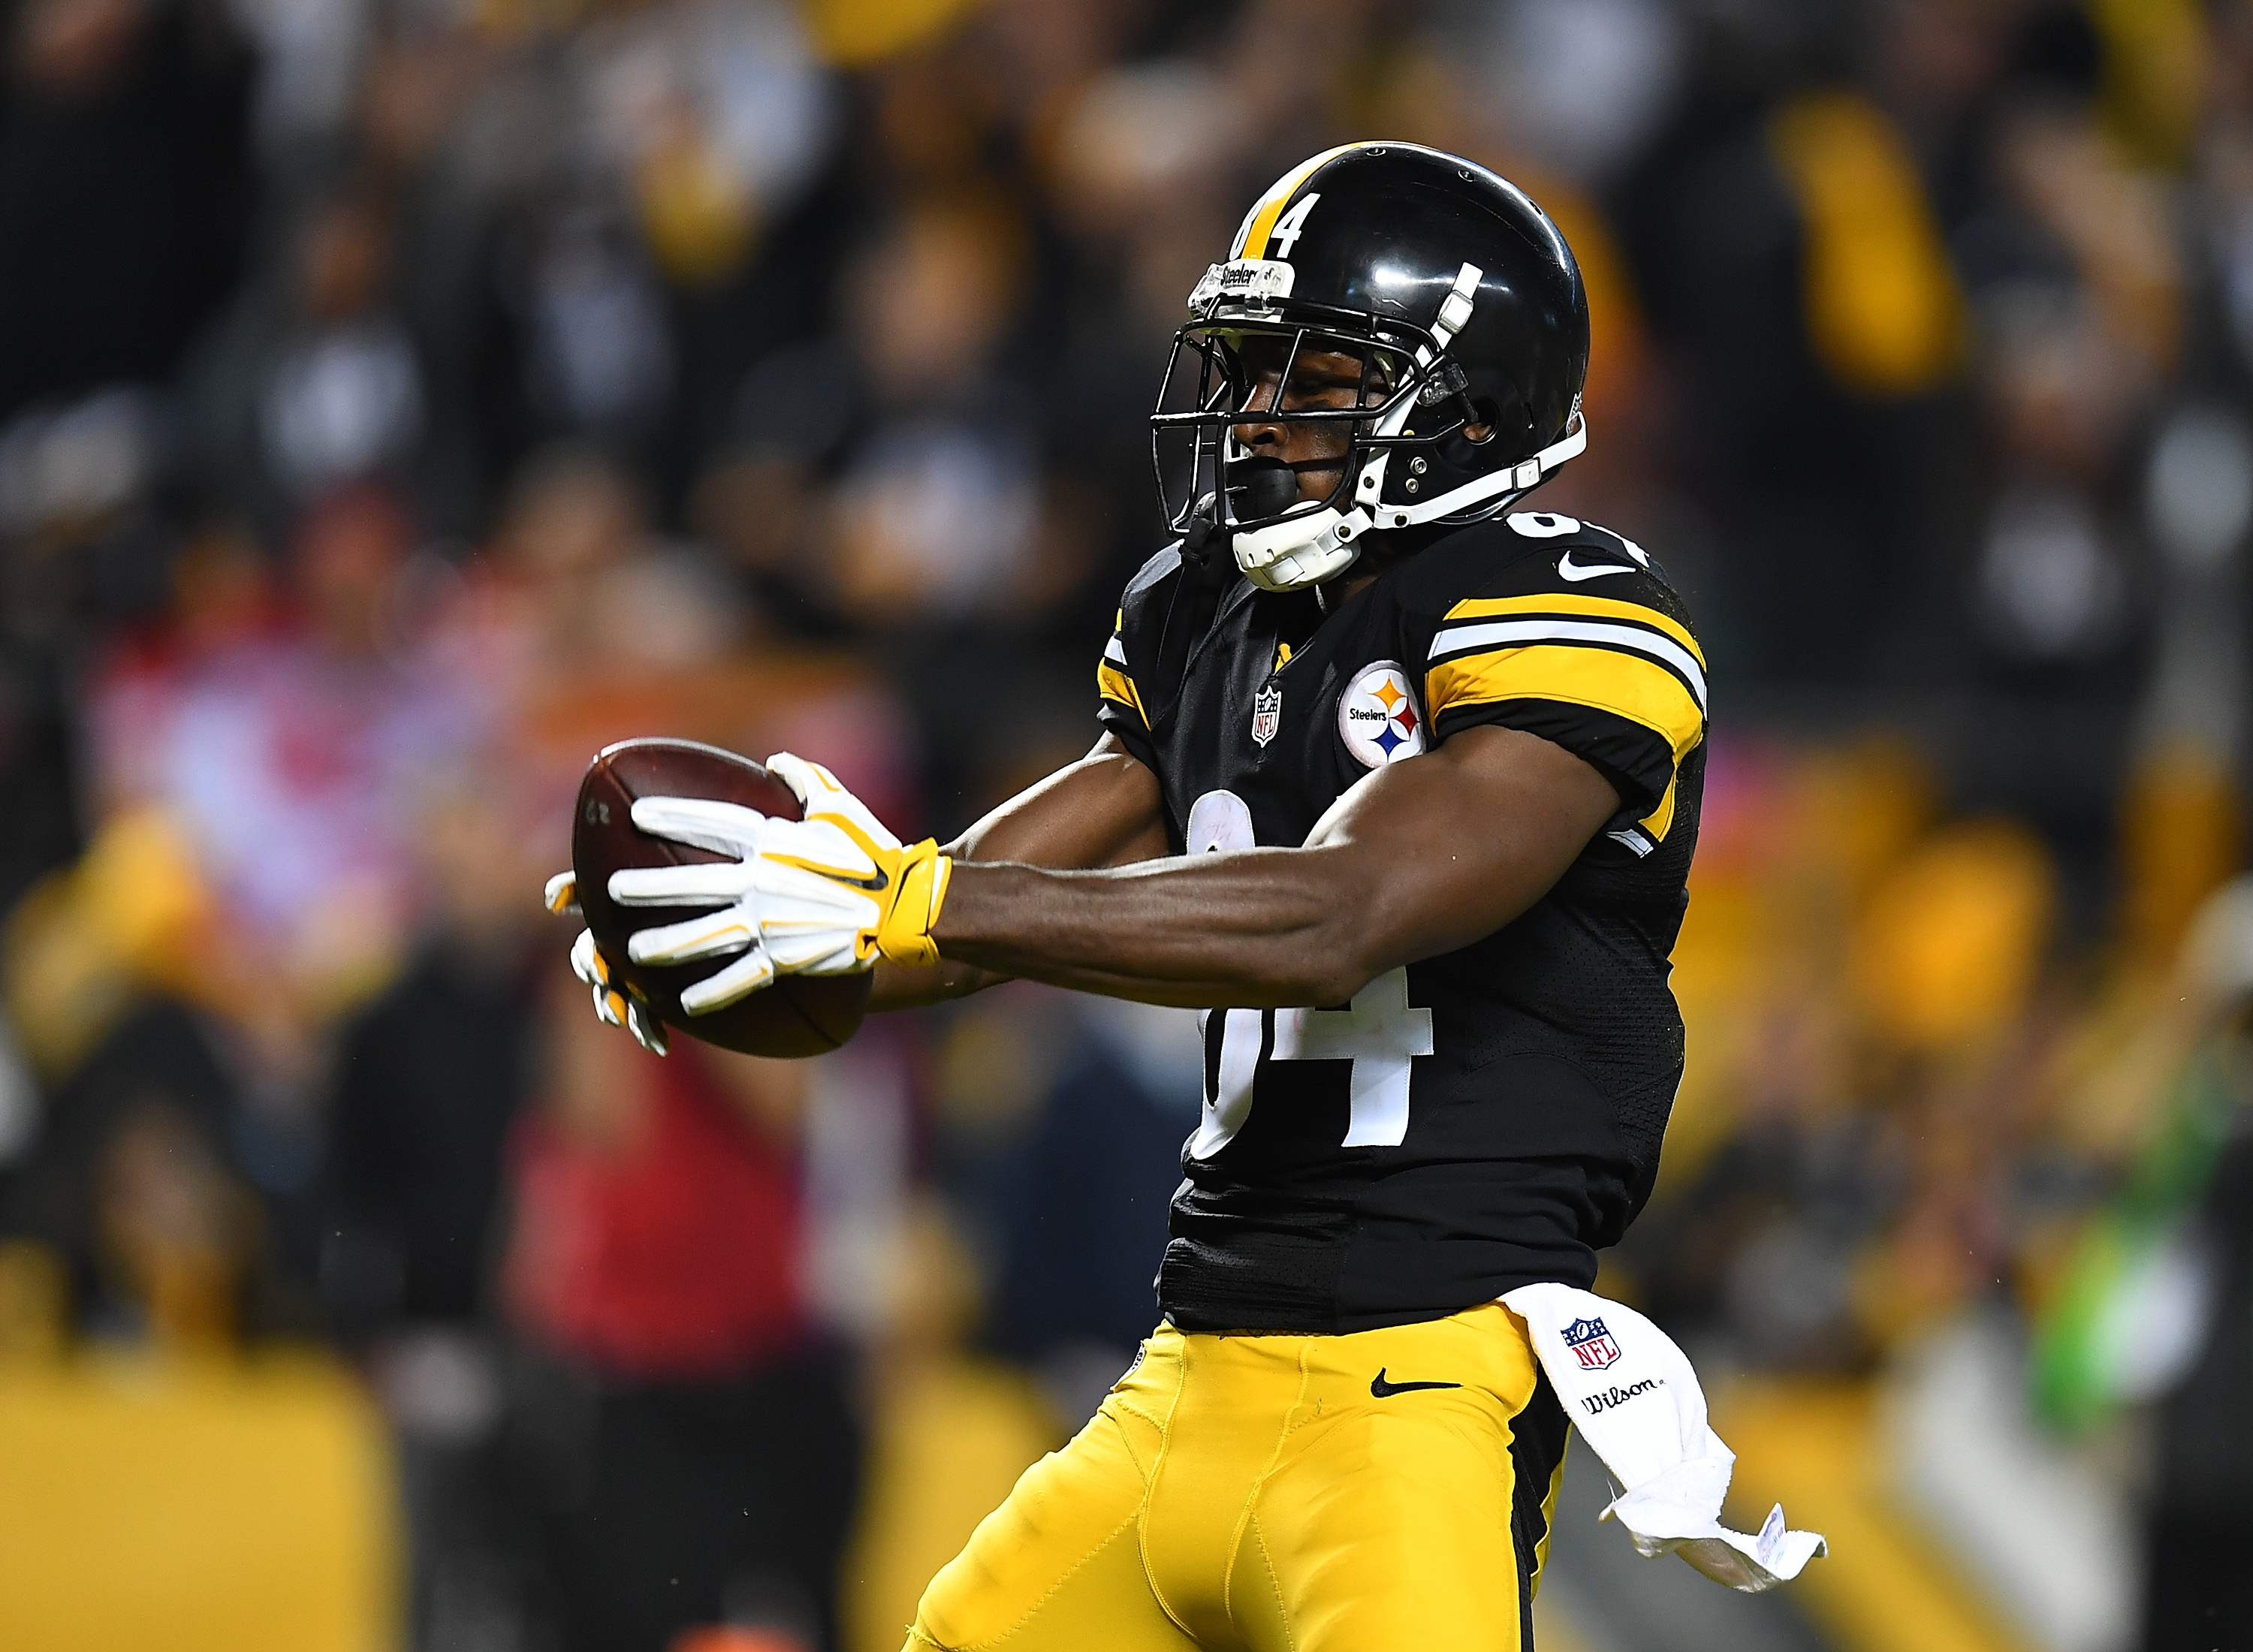 steelers dolphins playoffs score, steelers dolphins game stats, steelers dolphins winner, steelers dolphins final, steelers dolphins live score